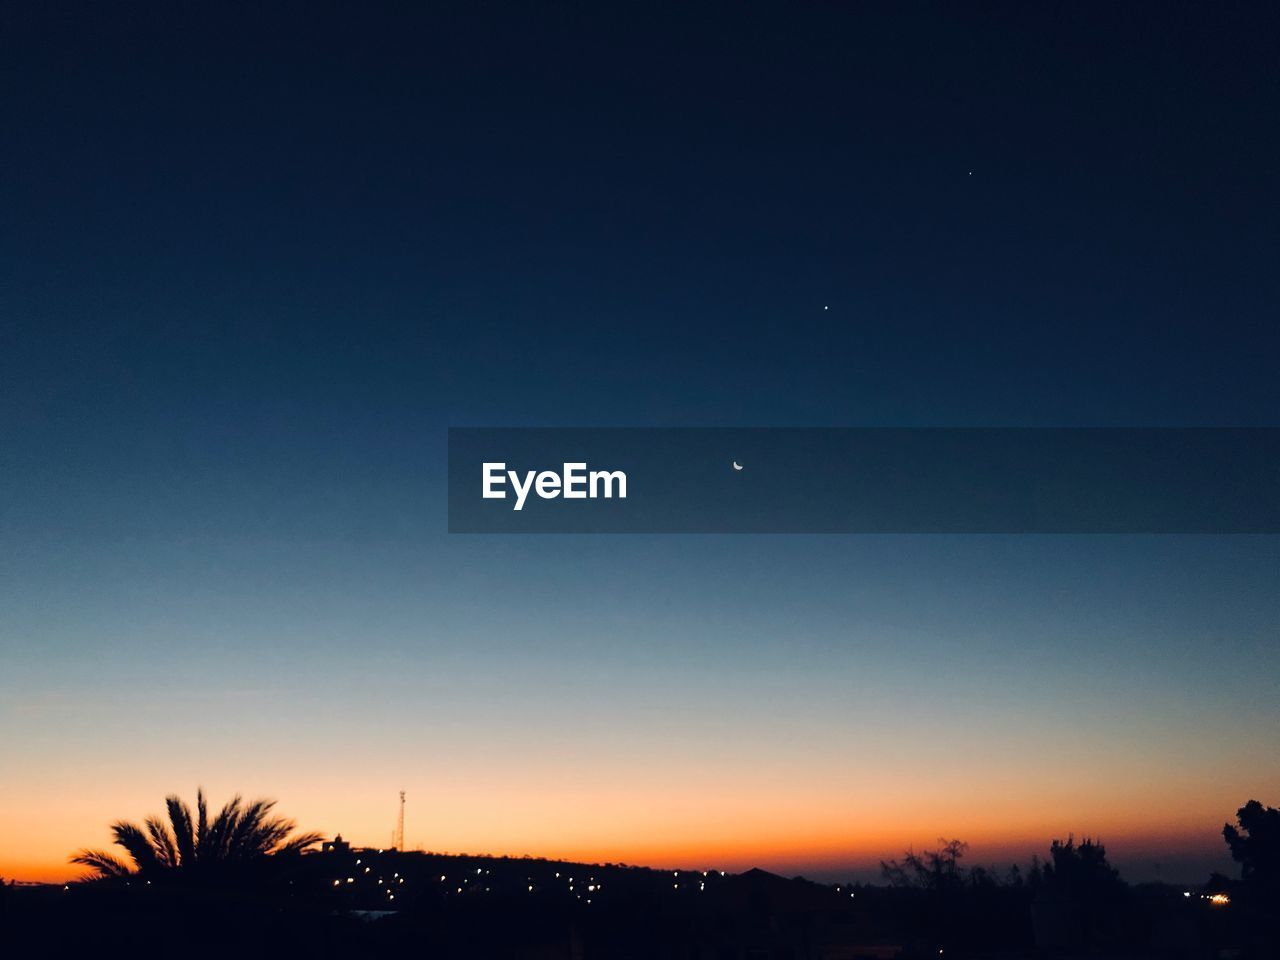 sky, moon, tree, crescent, plant, scenics - nature, silhouette, tranquil scene, night, tranquility, beauty in nature, nature, copy space, sunset, no people, clear sky, dusk, half moon, outdoors, space, astronomy, planetary moon